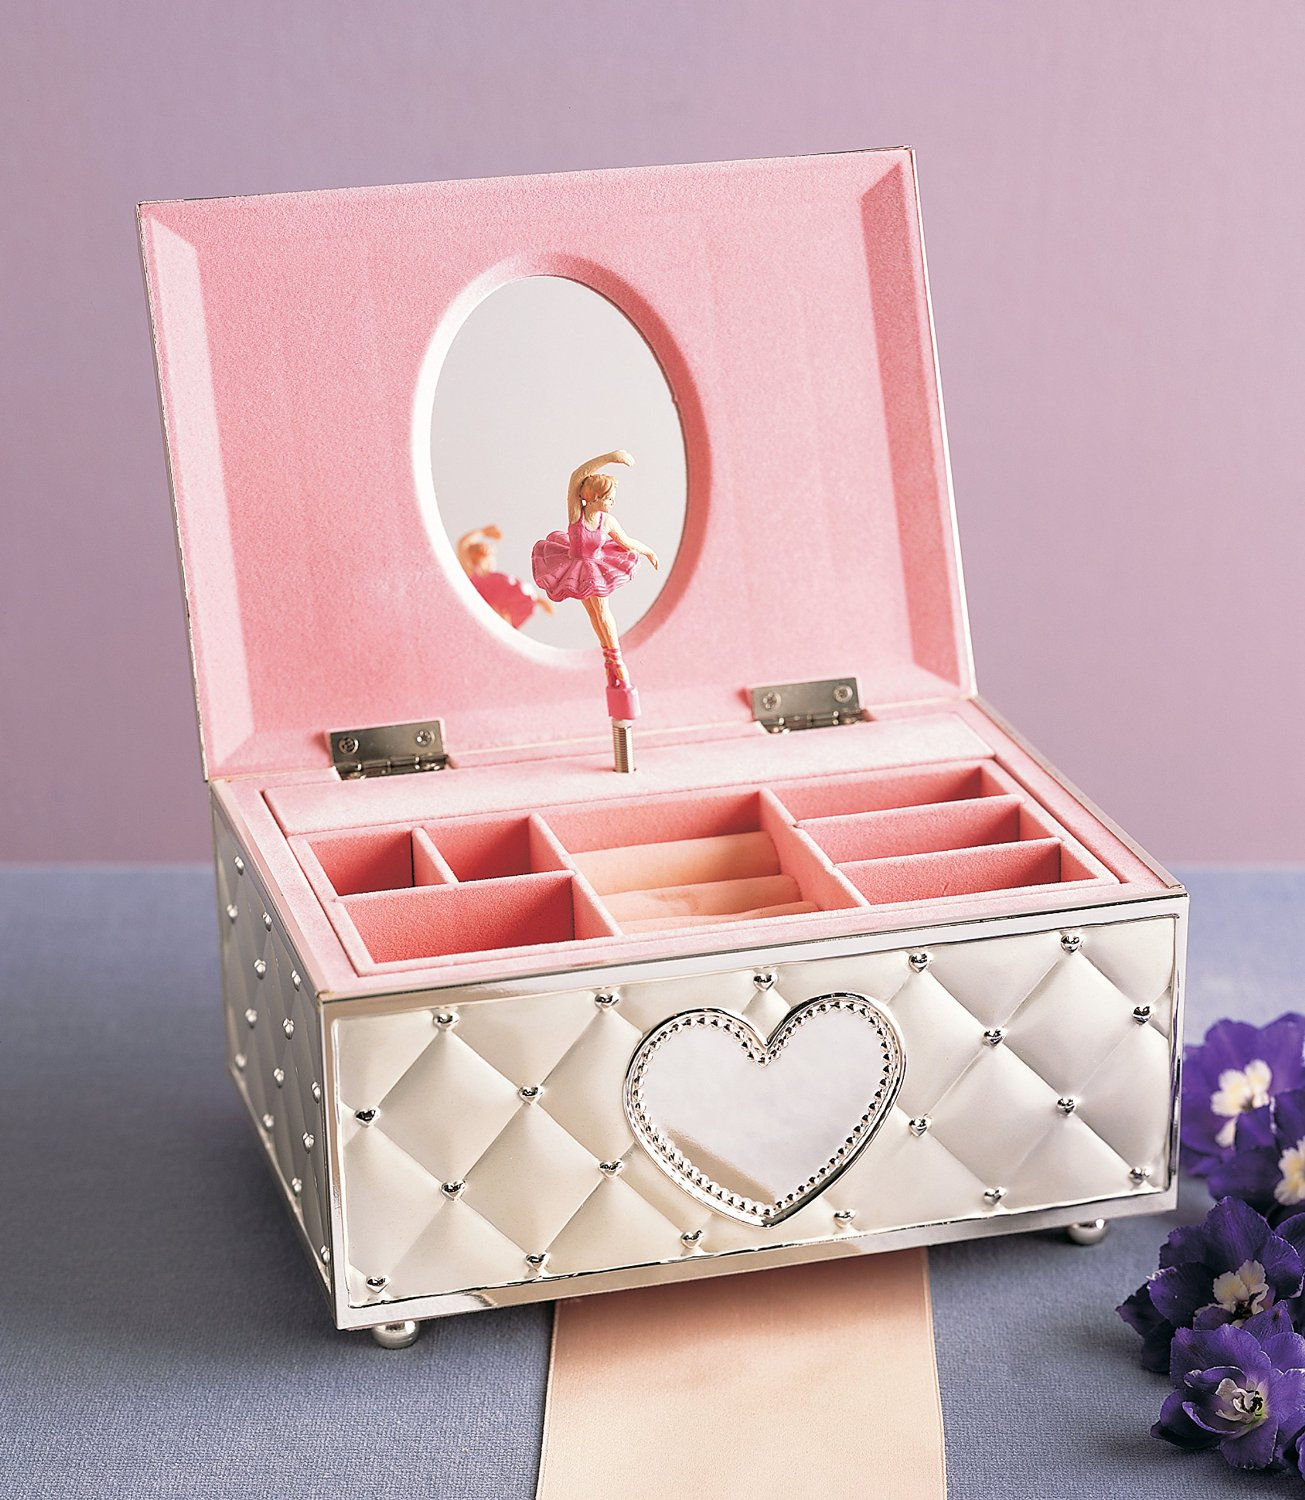 13 gifts tween girls will love for Amazon ballerina musical jewelry box